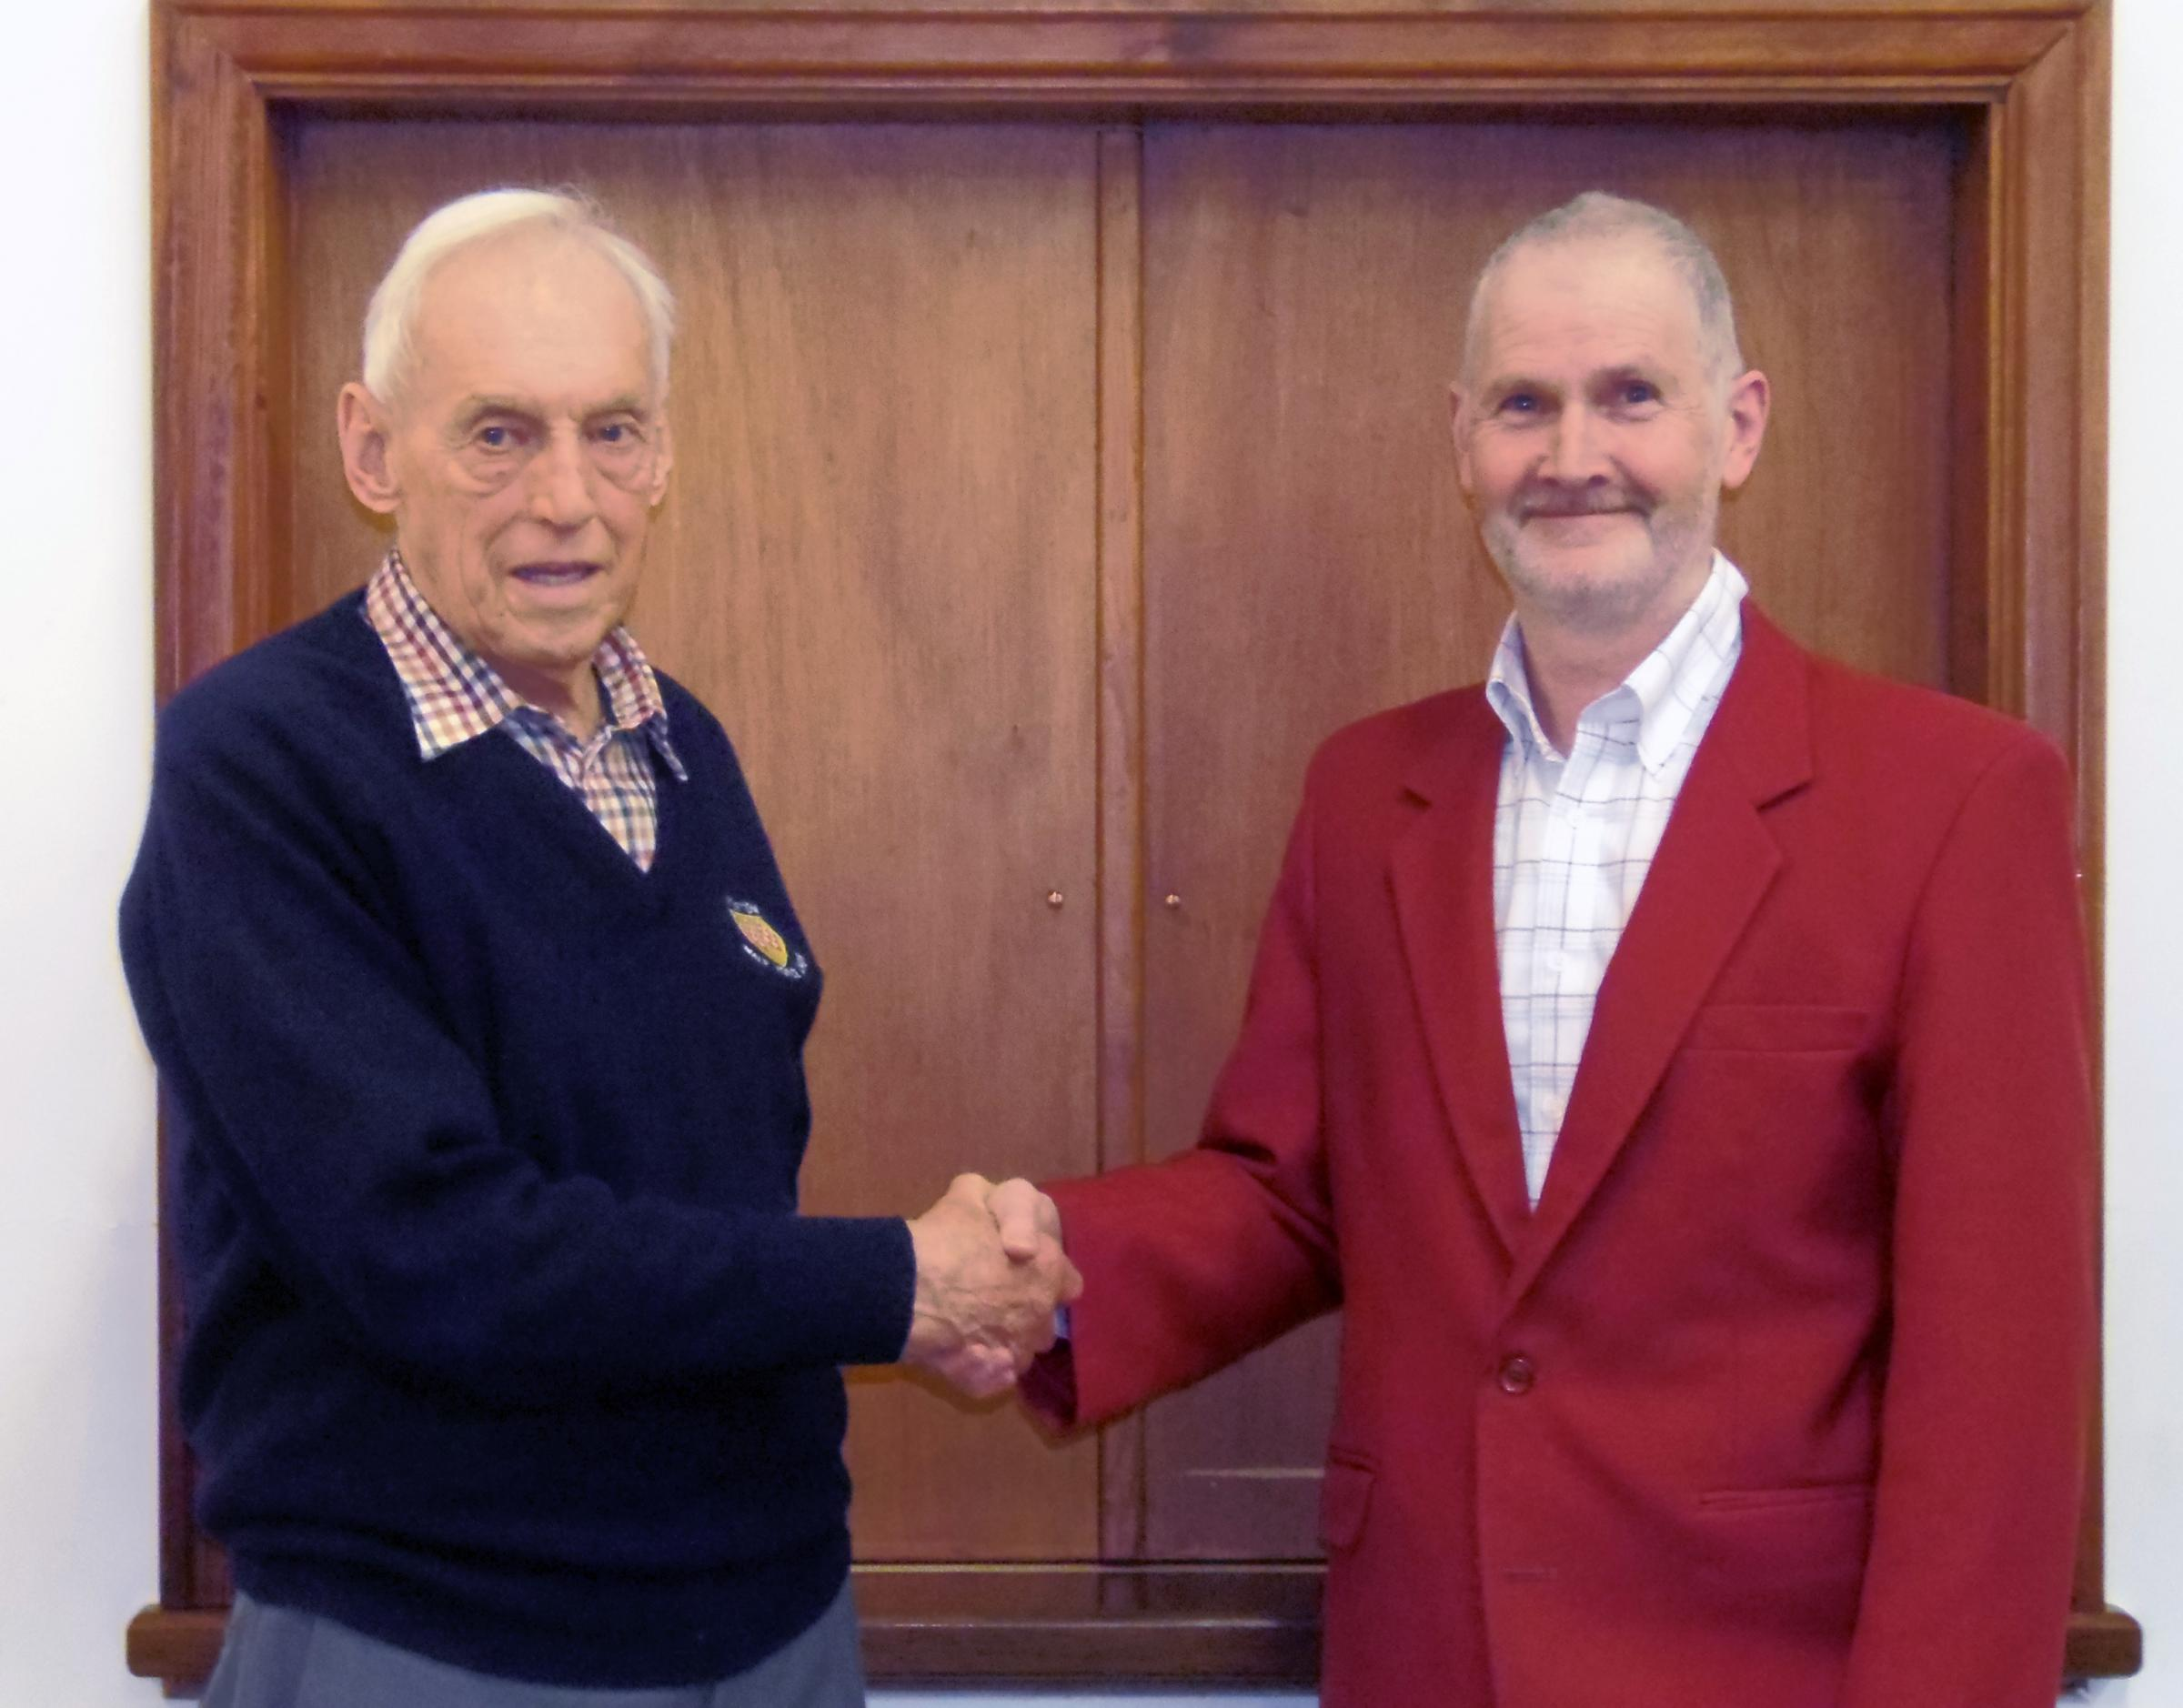 Paul Duff, right, receives his red choir jacket from Ken Wardell